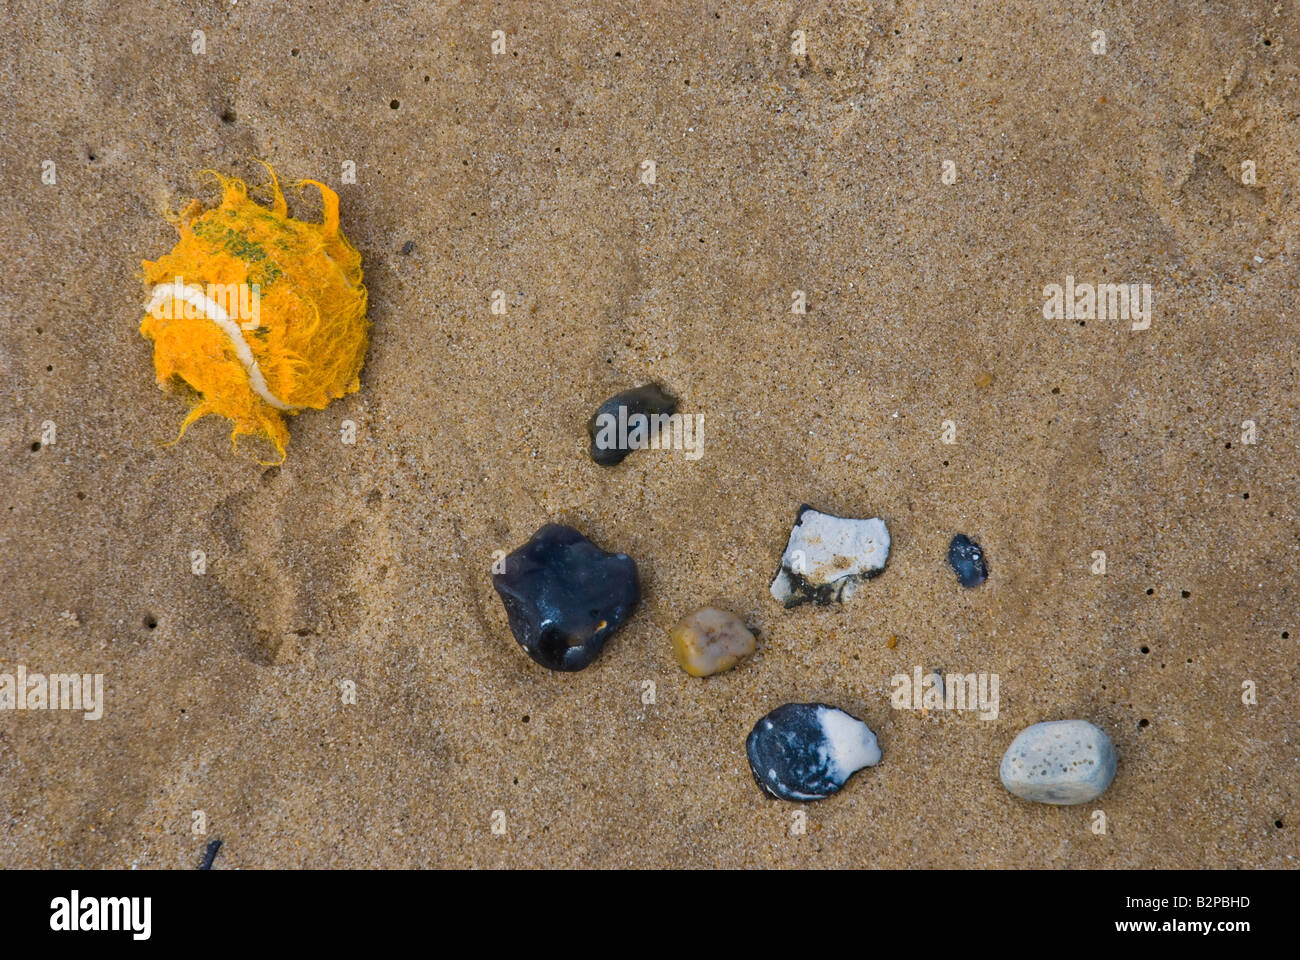 Orange tennis ball washed up on beach with pebbles - Stock Image